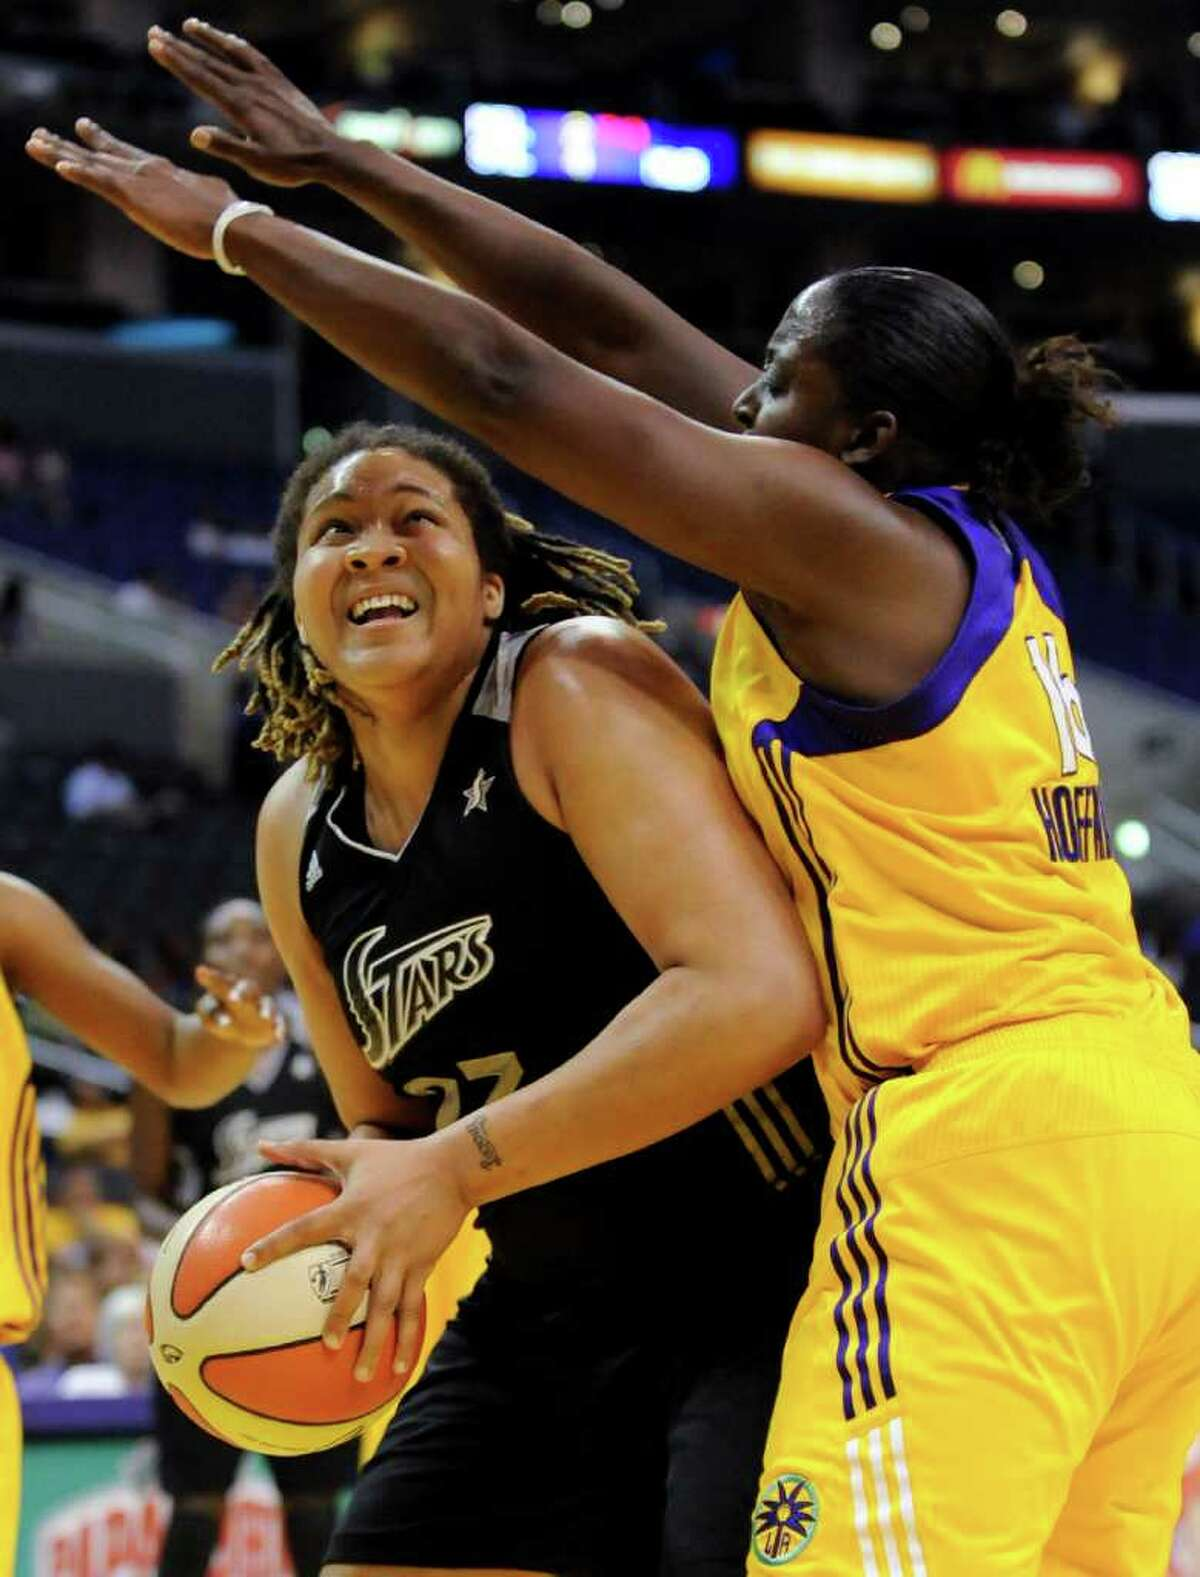 San Antonio Silver Stars forward Danielle Adams, left attempts to get around Los Angeles Sparks forward Ebony Hoffman as she drives to the basket in the first half of a WNBA basketball game, Tuesday, Sept. 6, 2011, in Los Angeles.